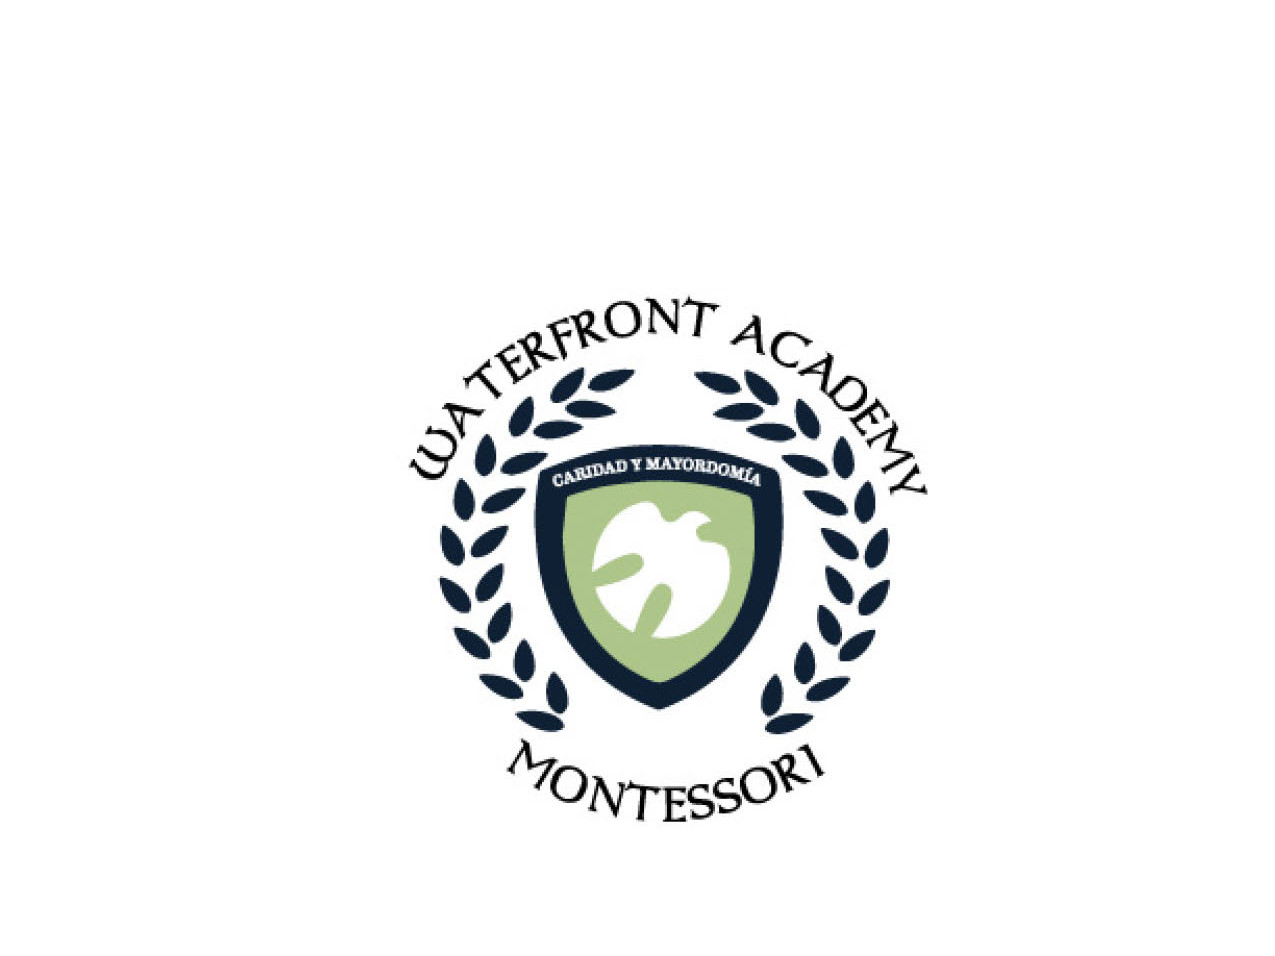 Waterfront Academy